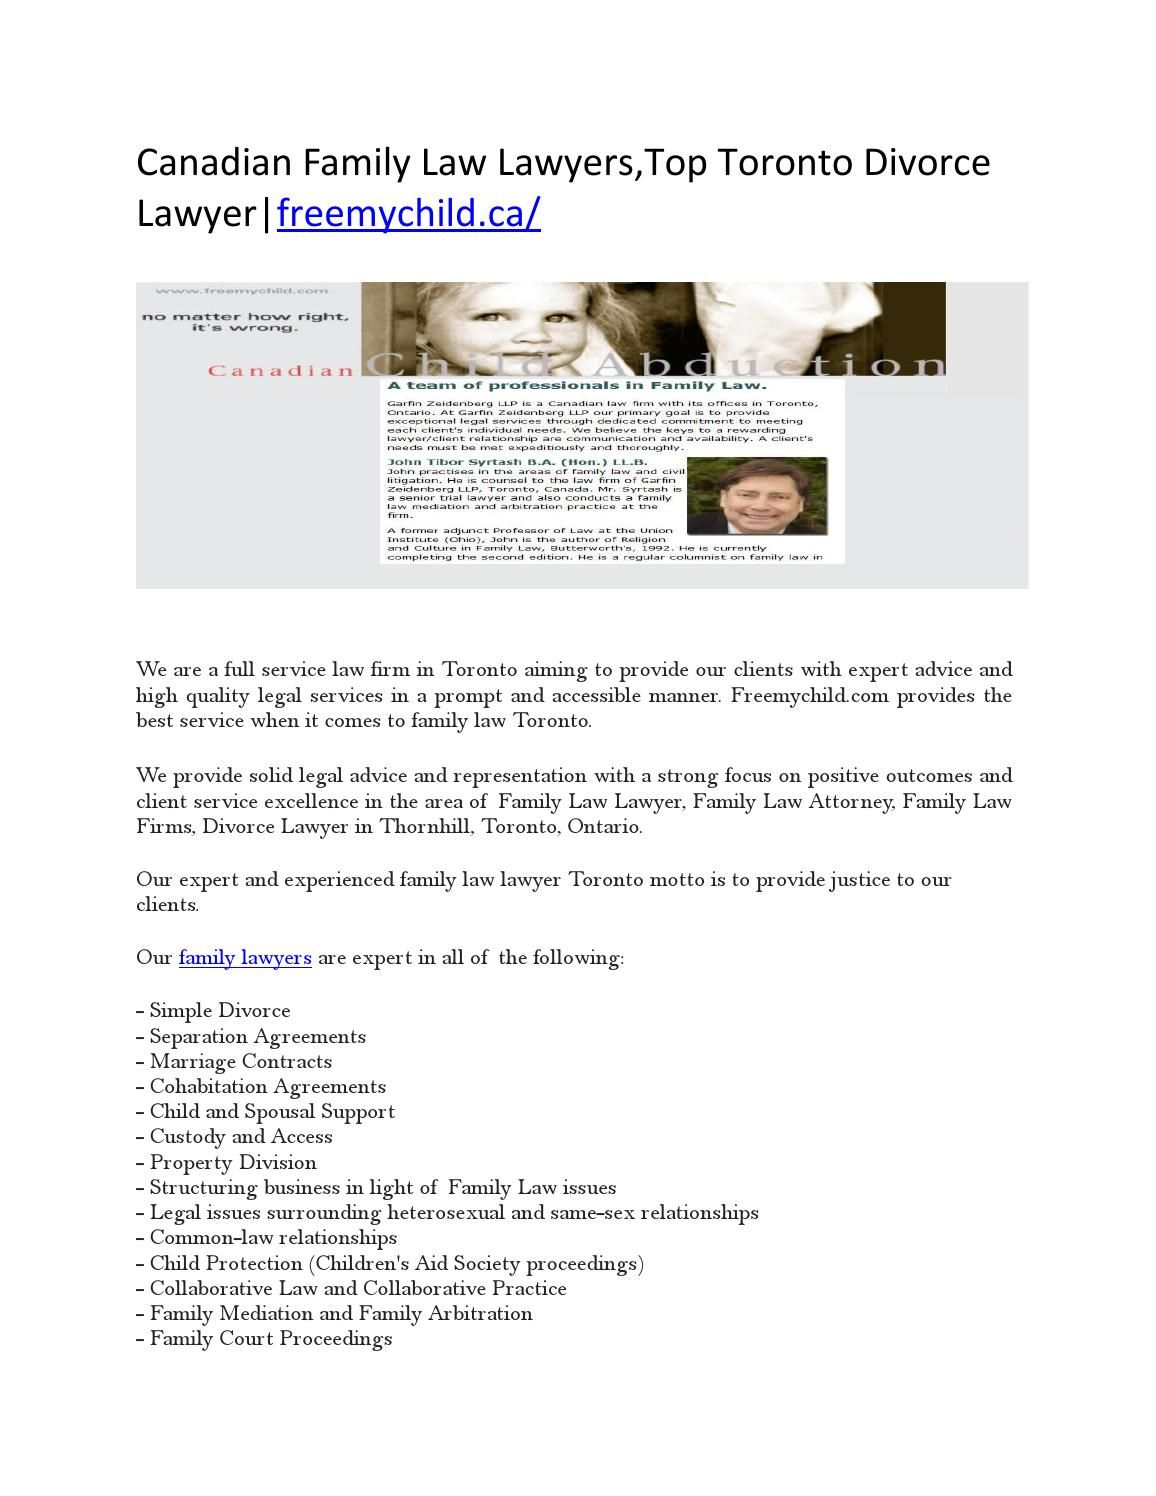 Canadian Family Law Lawyers,Top Toronto Divorce Lawyer